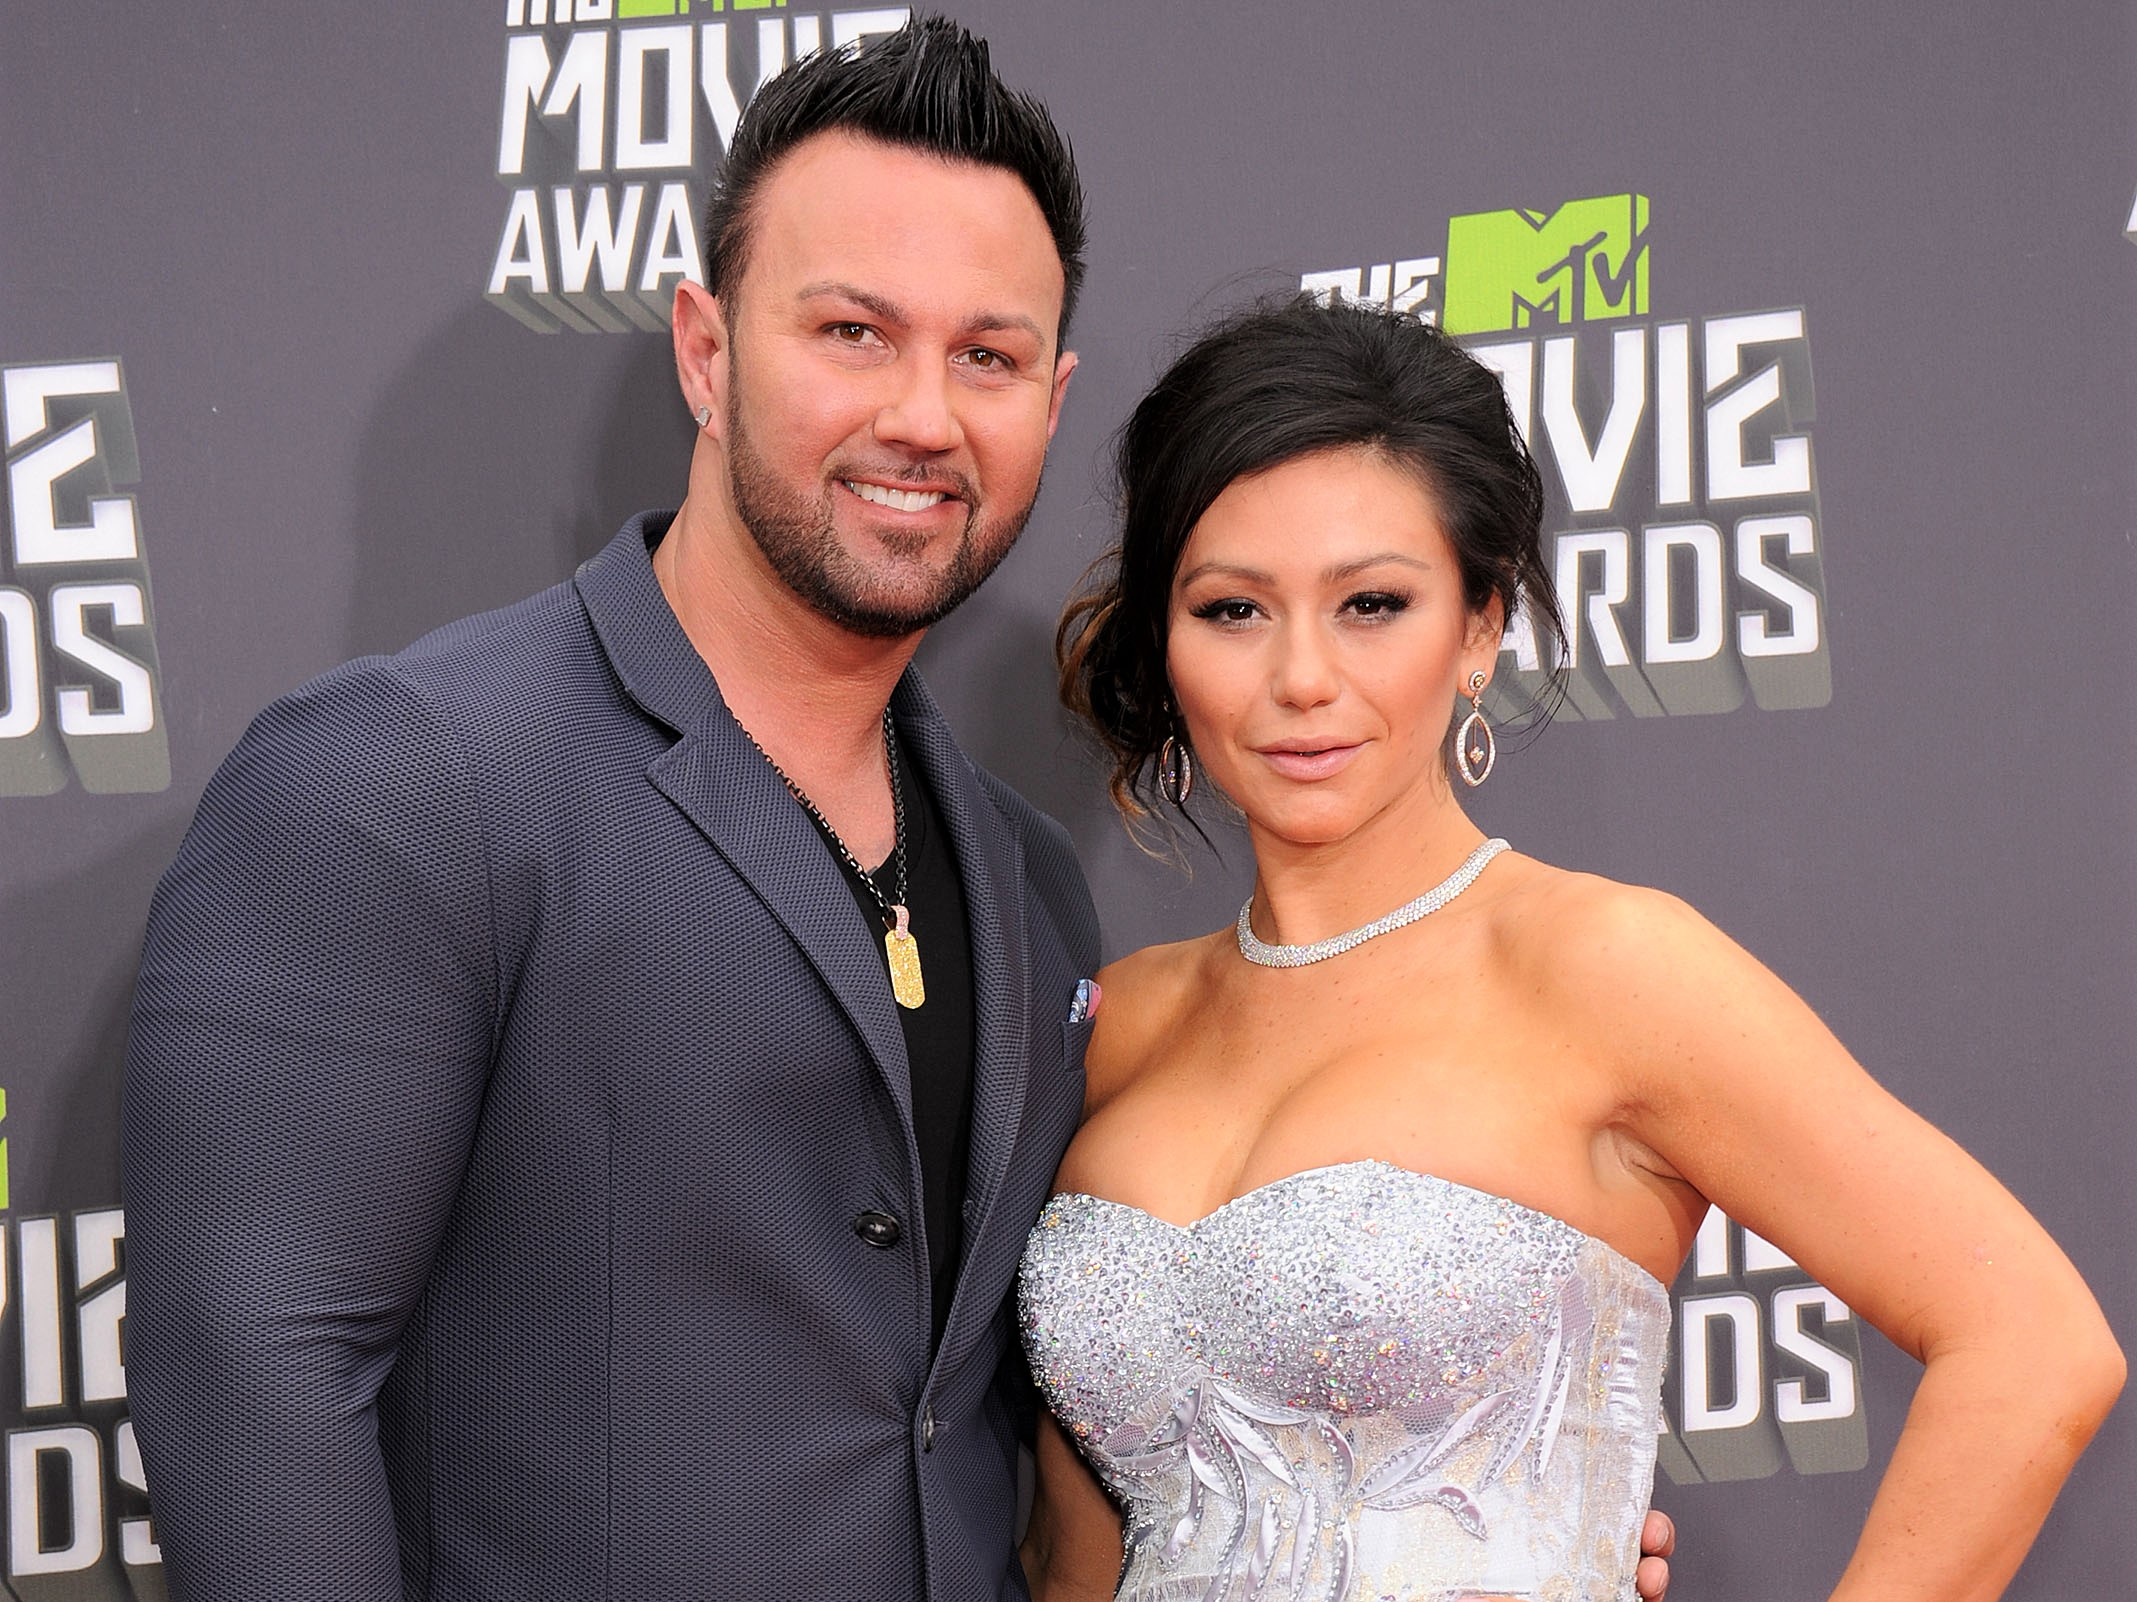 Jersey Shore's Jenni 'JWoww' Farley Files for Divorce from Husband of 3 Years Roger Mathews